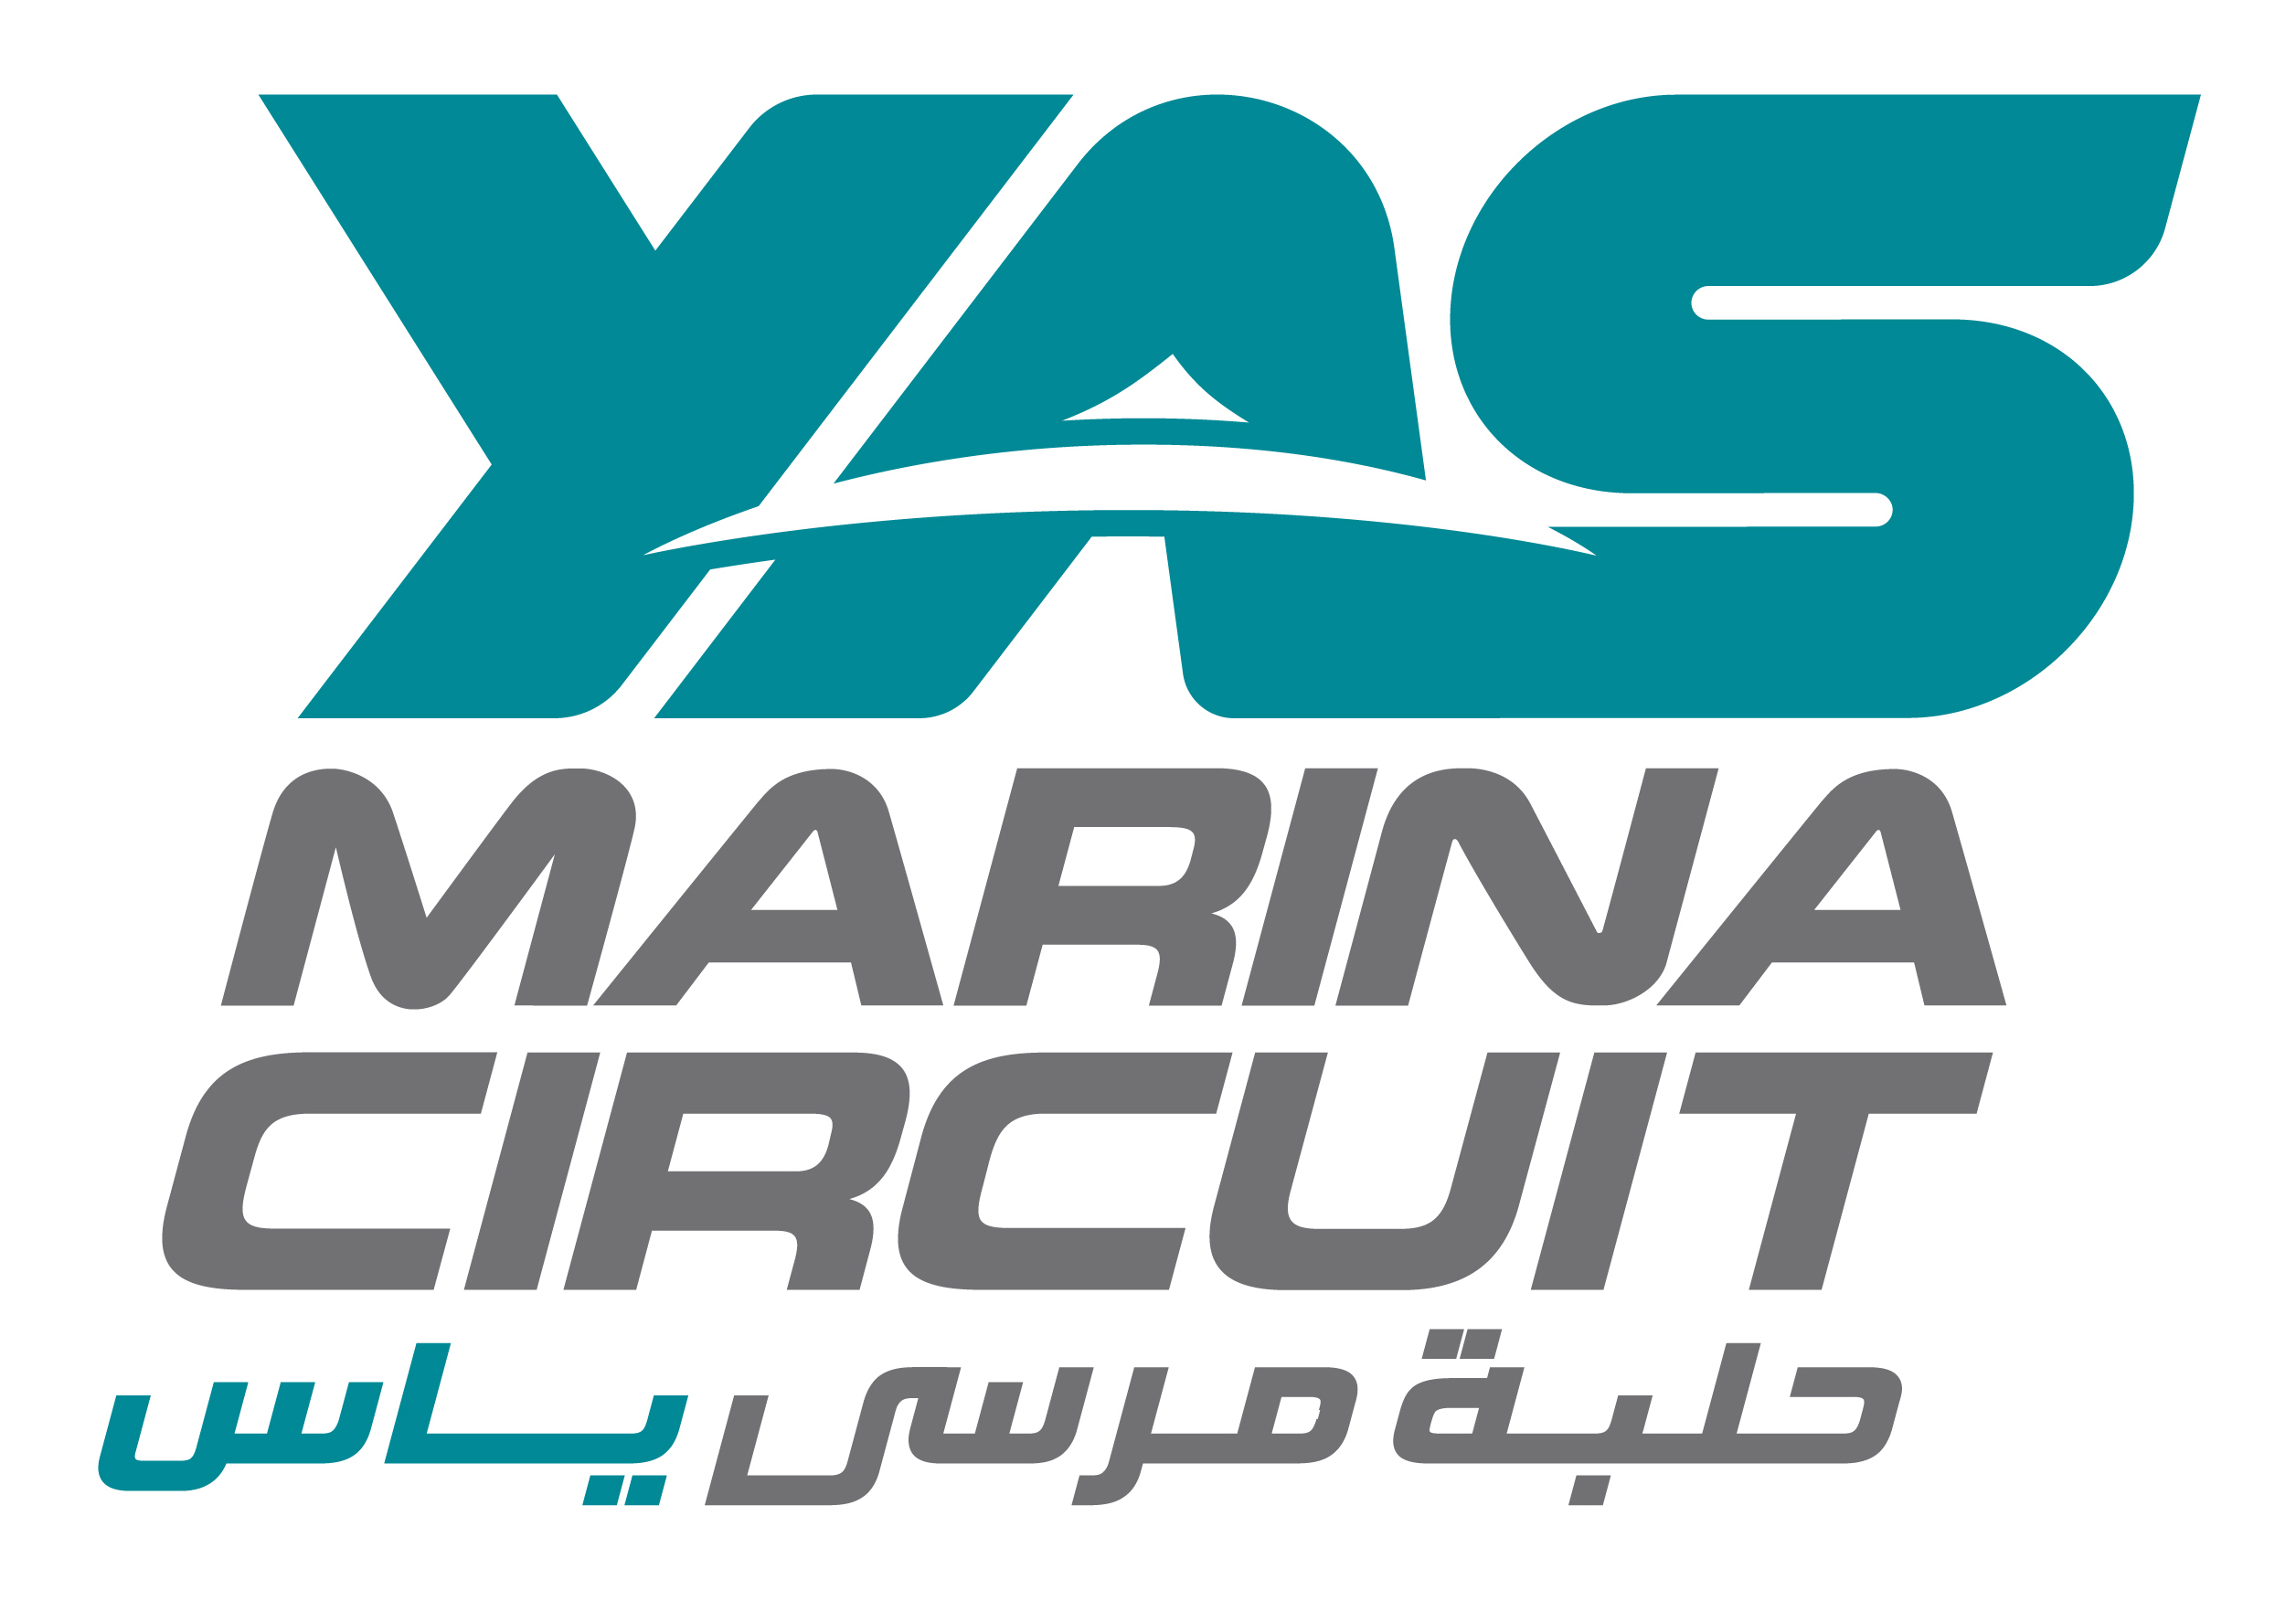 Yas Marina circuit 'Community Events'